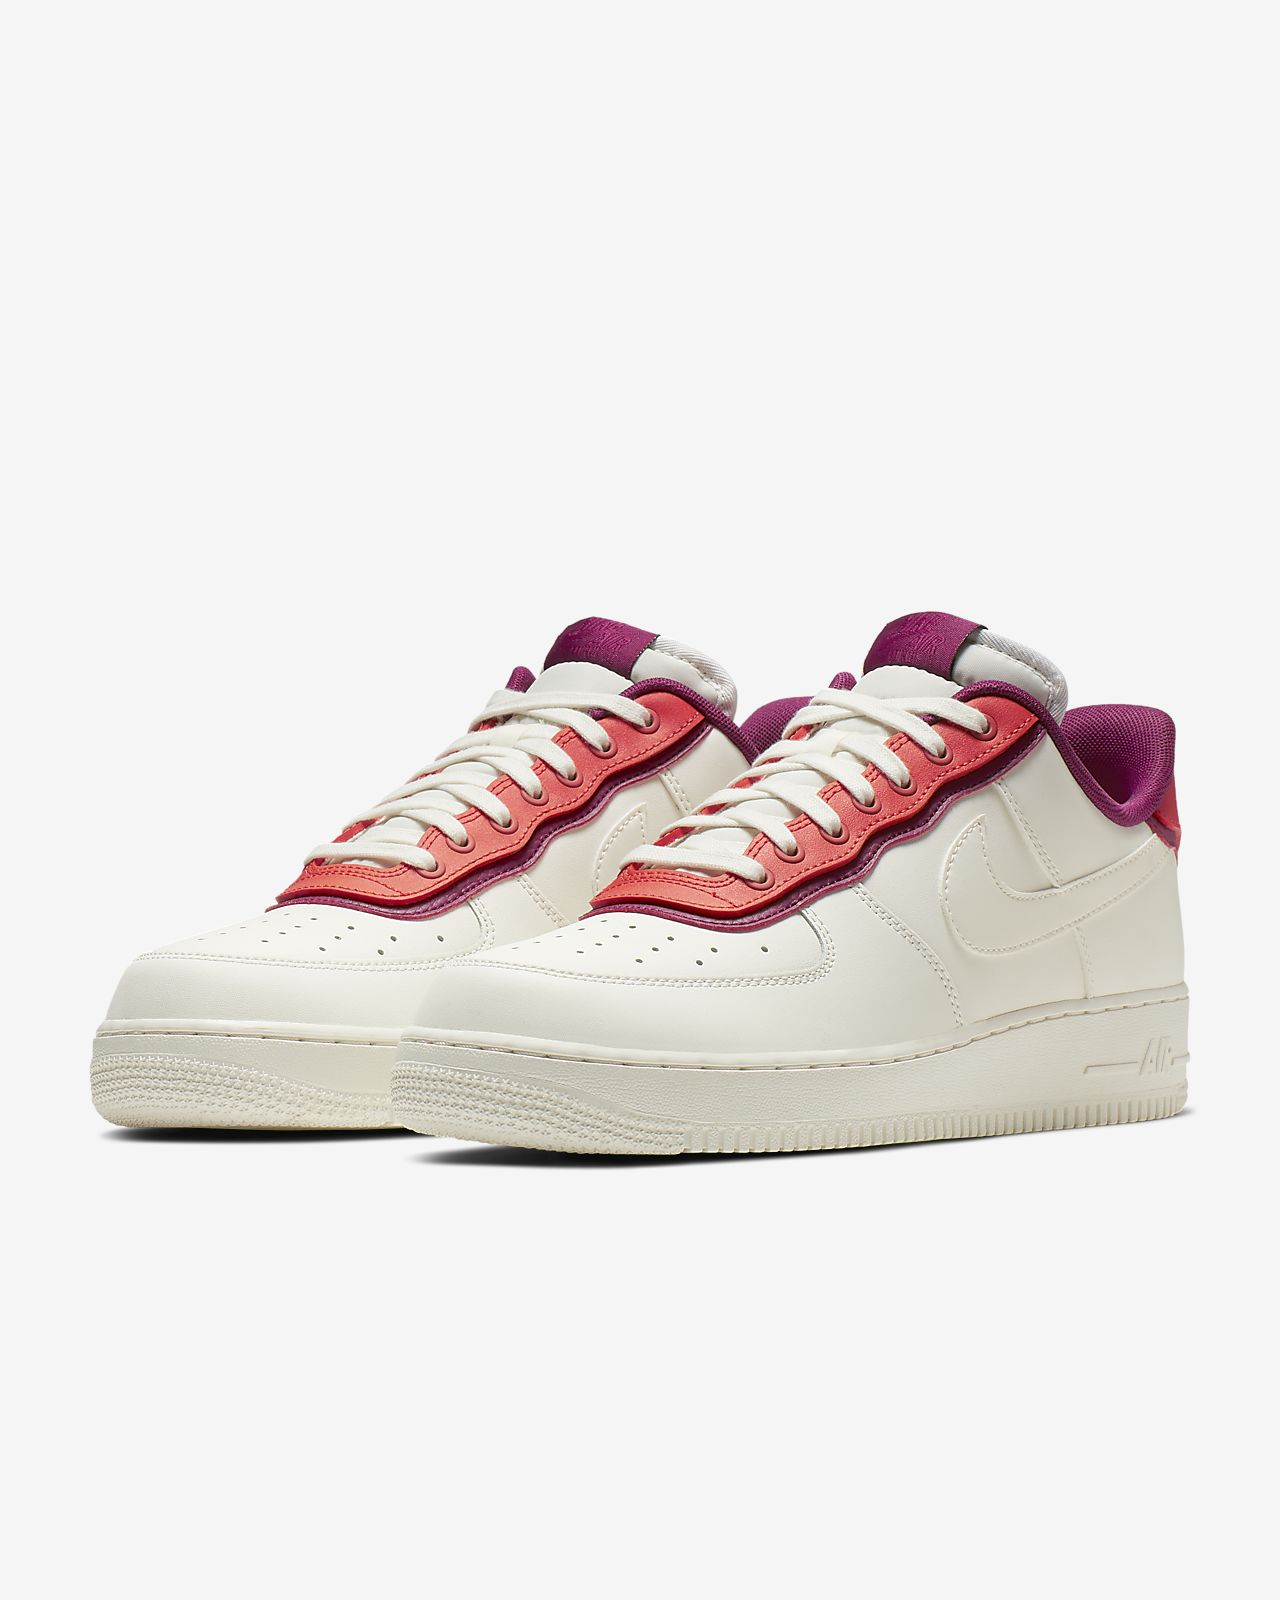 Force 1 '07 Homme Nike Chaussure Lv8 Air Pour dxBoWCeQrE